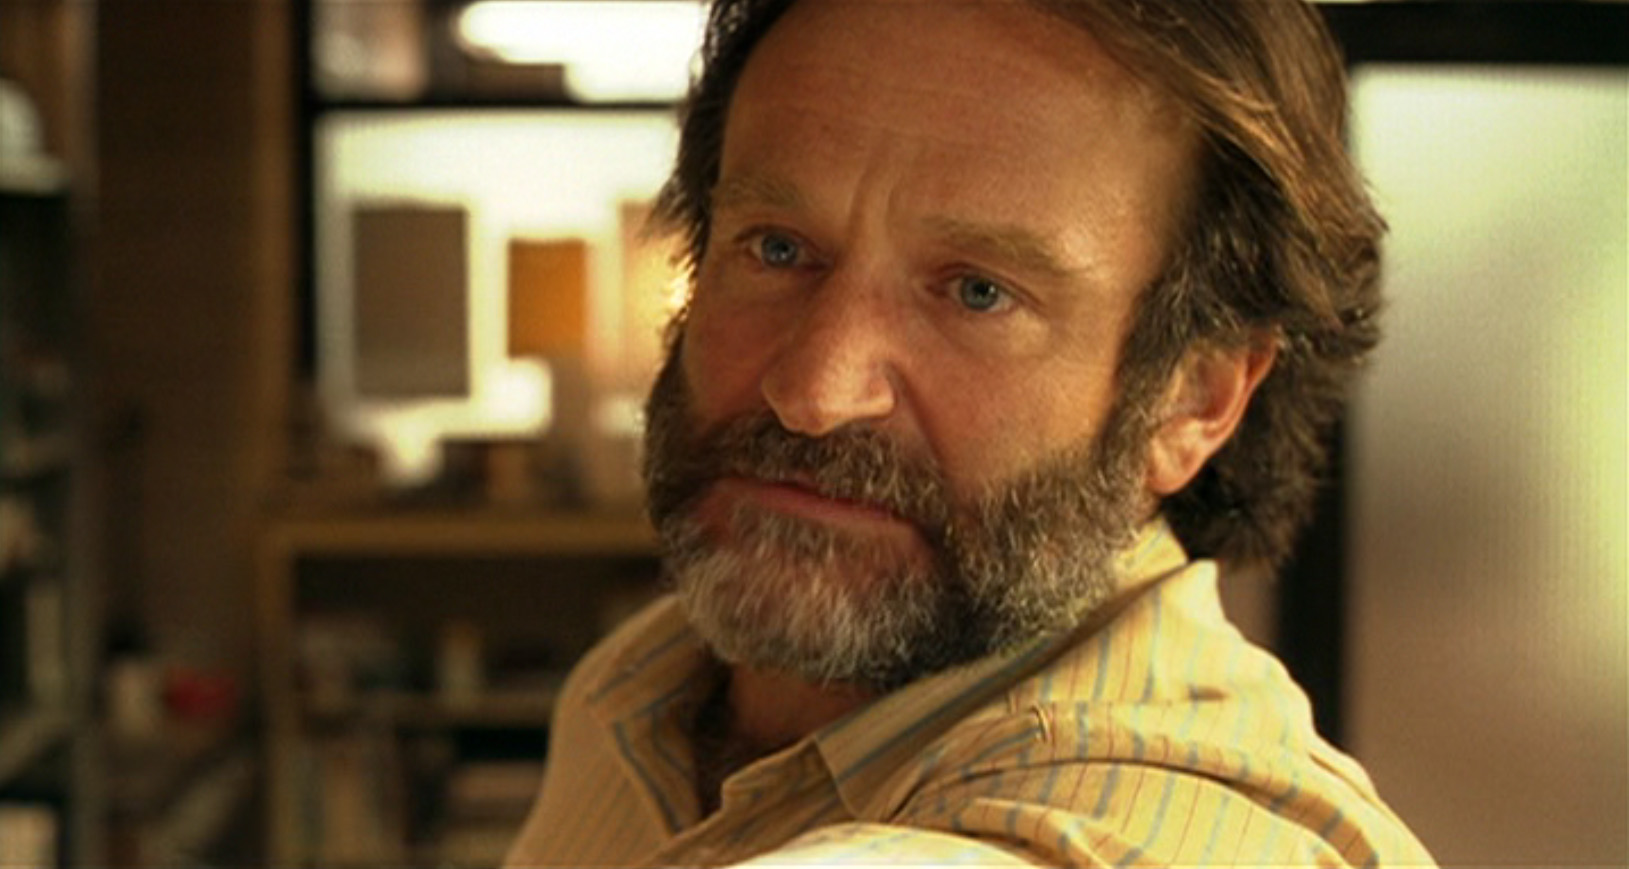 a review of the movie good will hunting Will hunting washes floors at mit it's honest, honorable work he tells himself but  when he comes home at night, he applies his brilliant mind to.